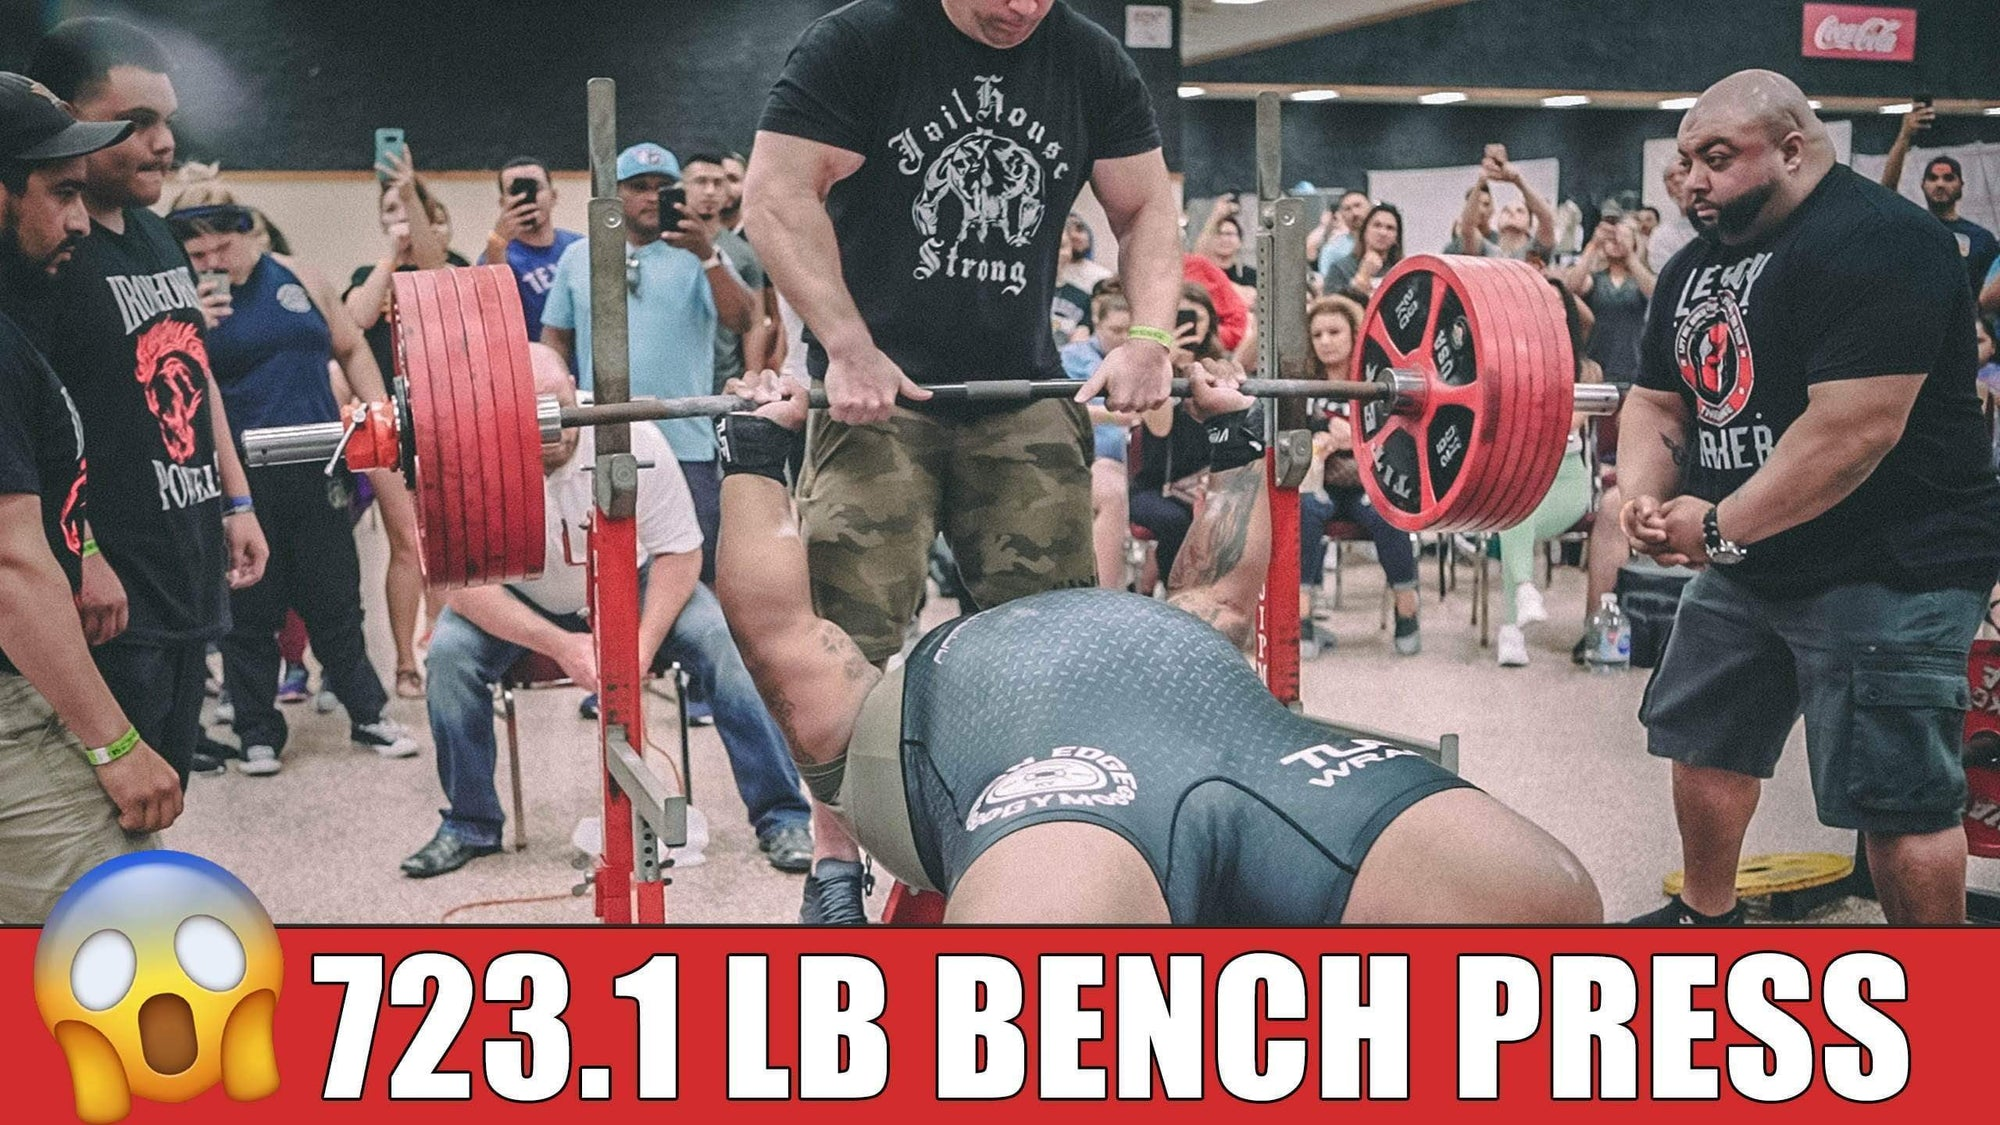 Julius Maddox 723.1 Lb Bench Press Is The New American Record!